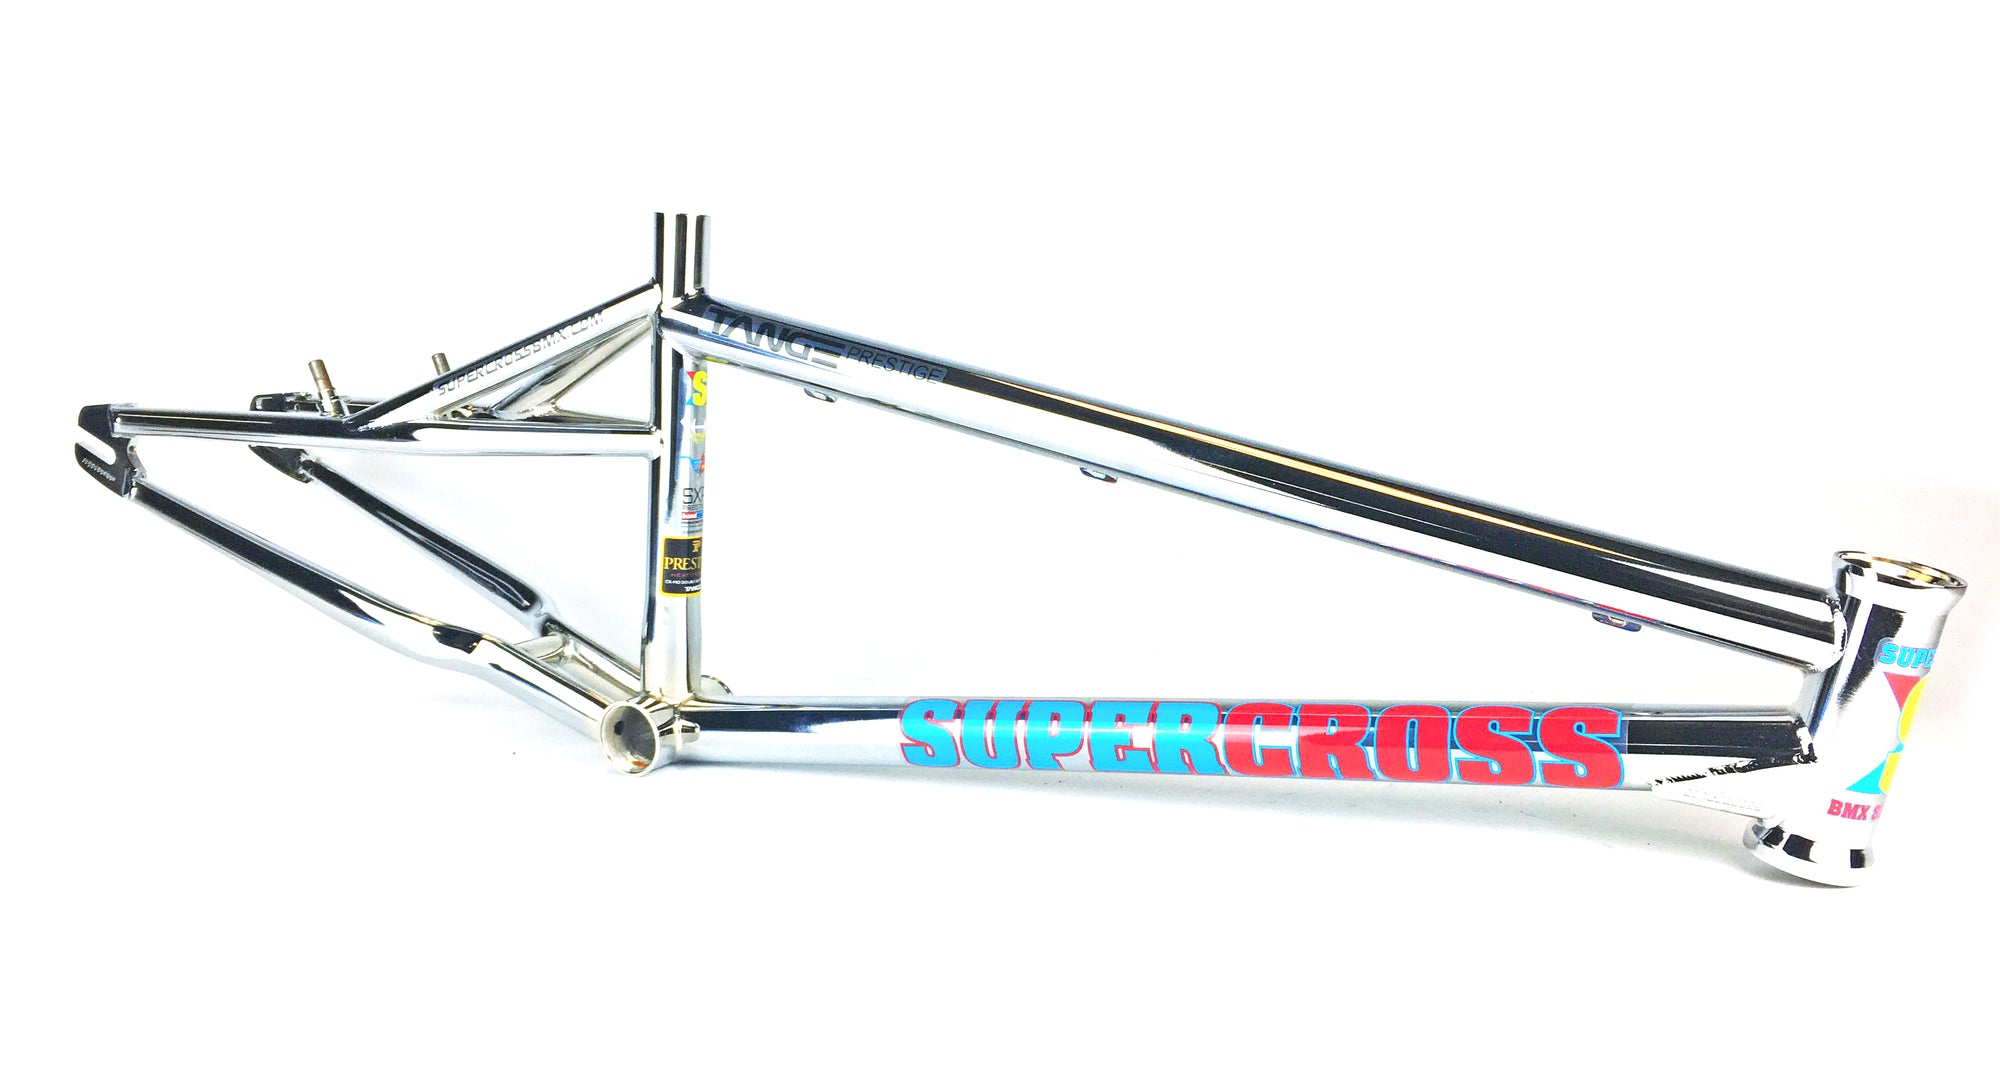 Supercross BMX | SX250 - 30 Year Anniversary BMX Race Frame - The Six Bar